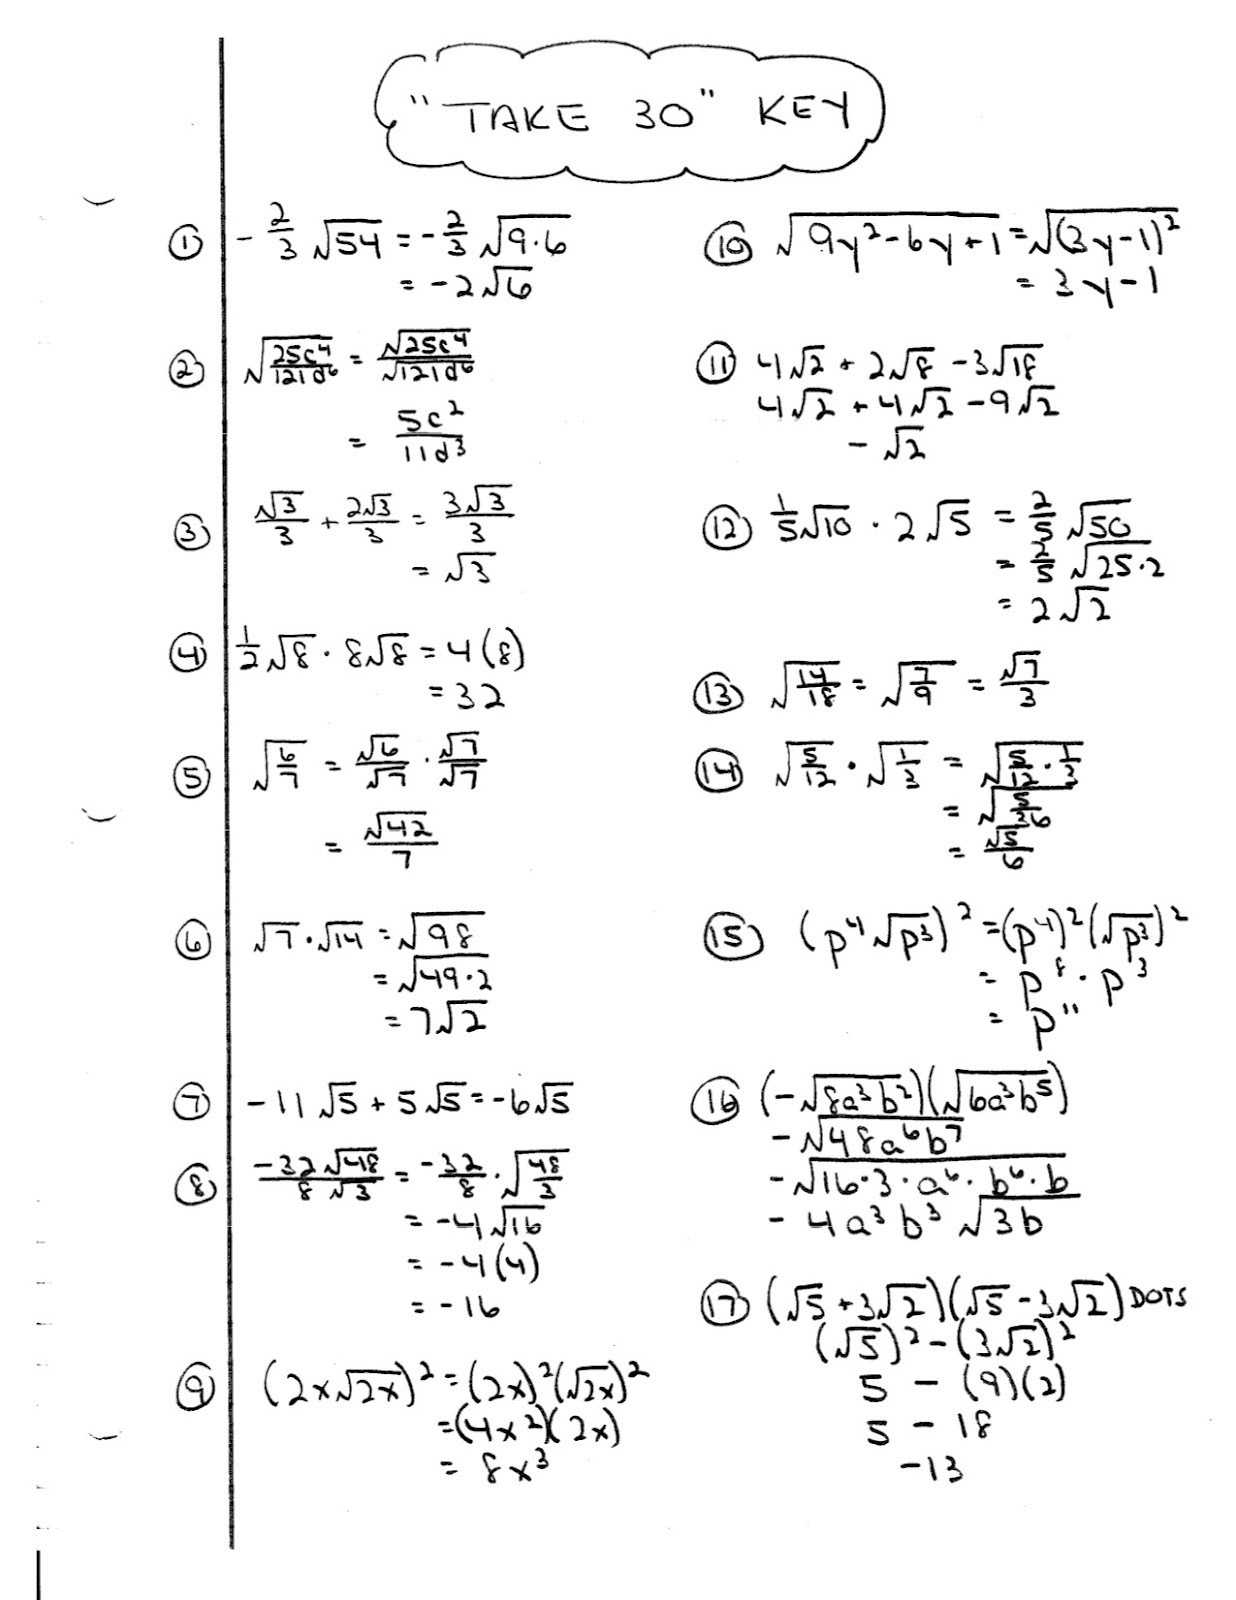 Elegant Math Worksheet Did You Hear About Answers Up